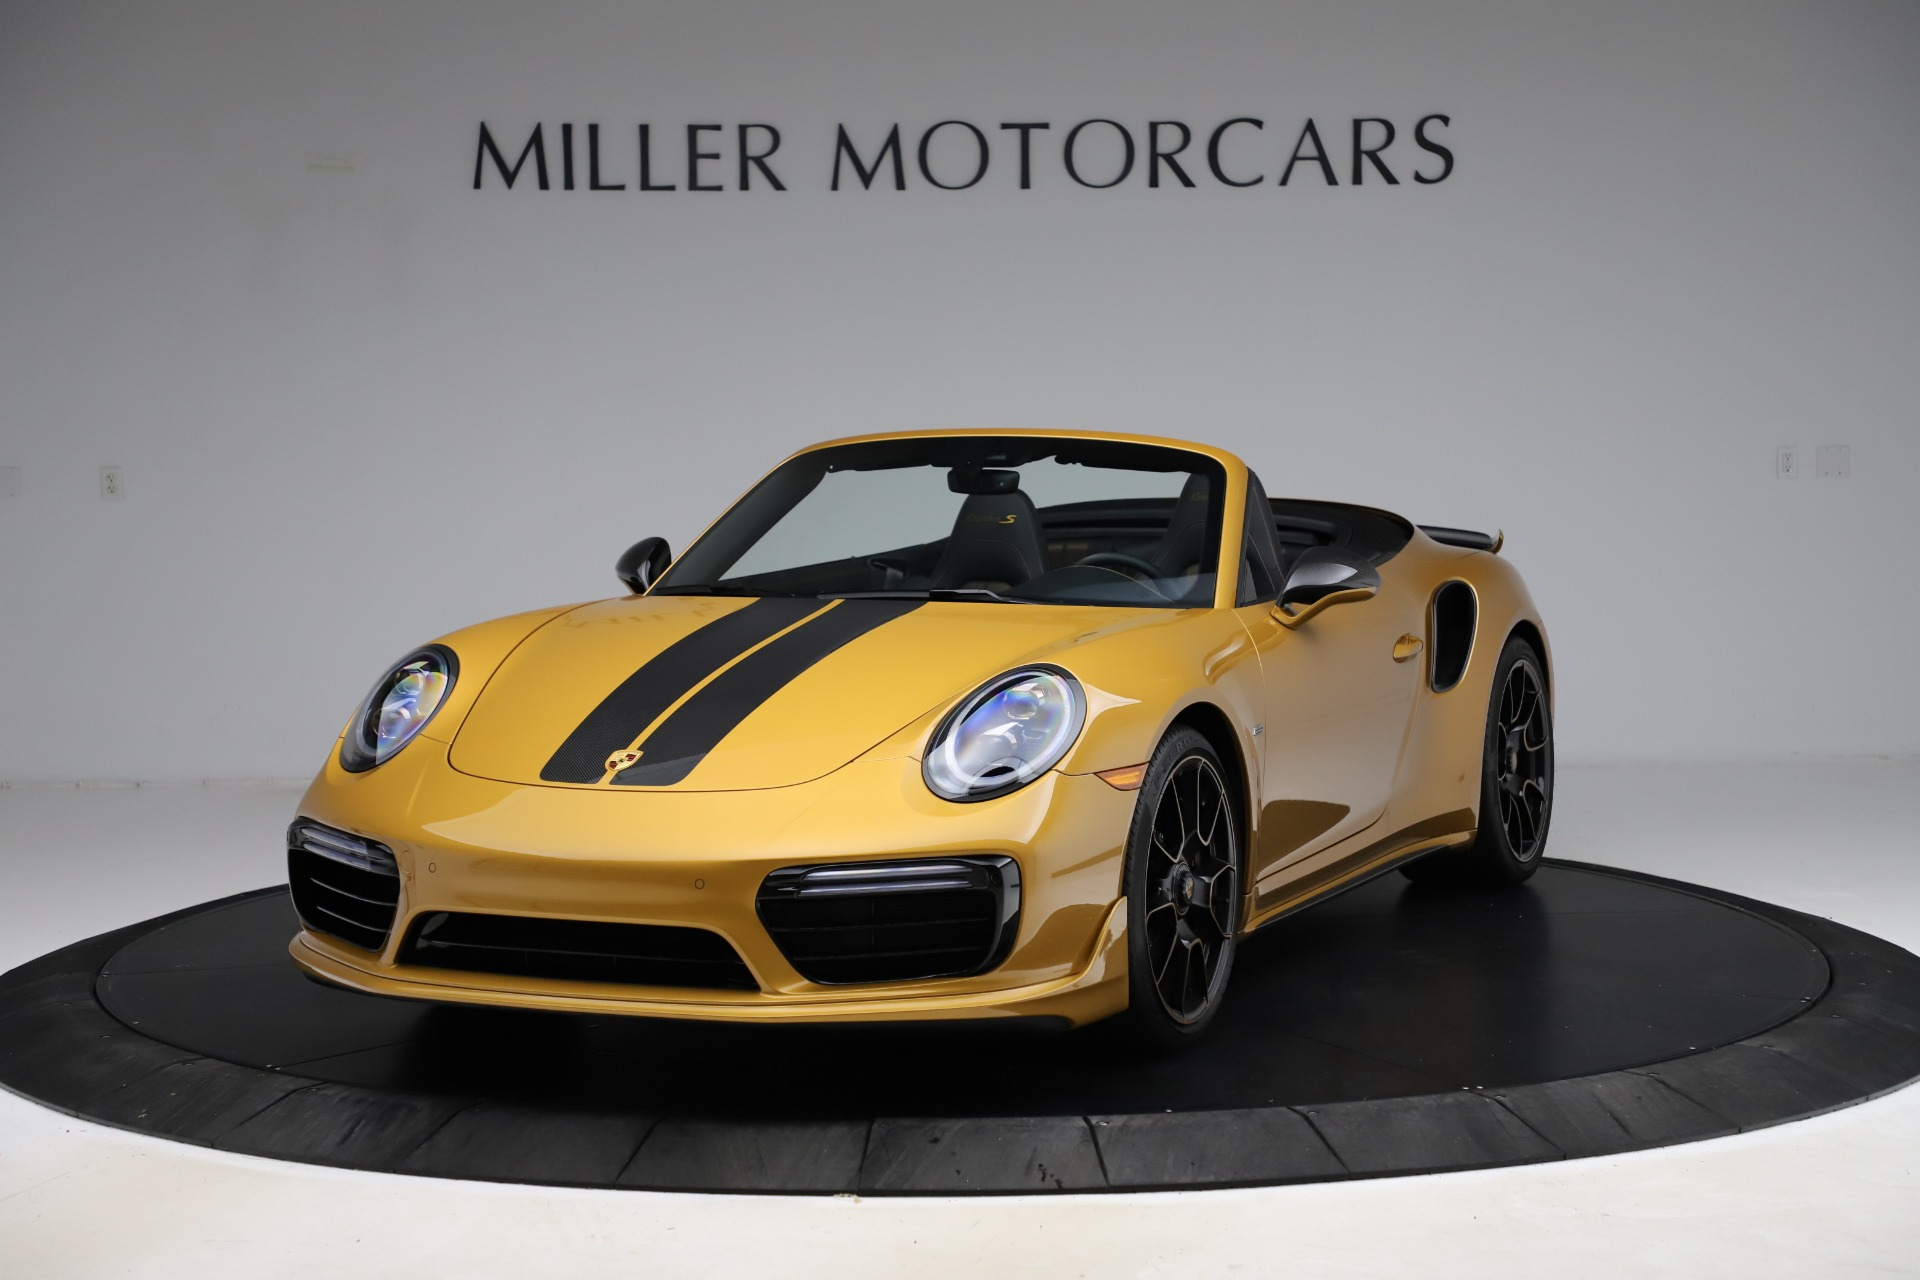 Used 2019 Porsche 911 Turbo S Exclusive for sale Sold at Alfa Romeo of Greenwich in Greenwich CT 06830 1